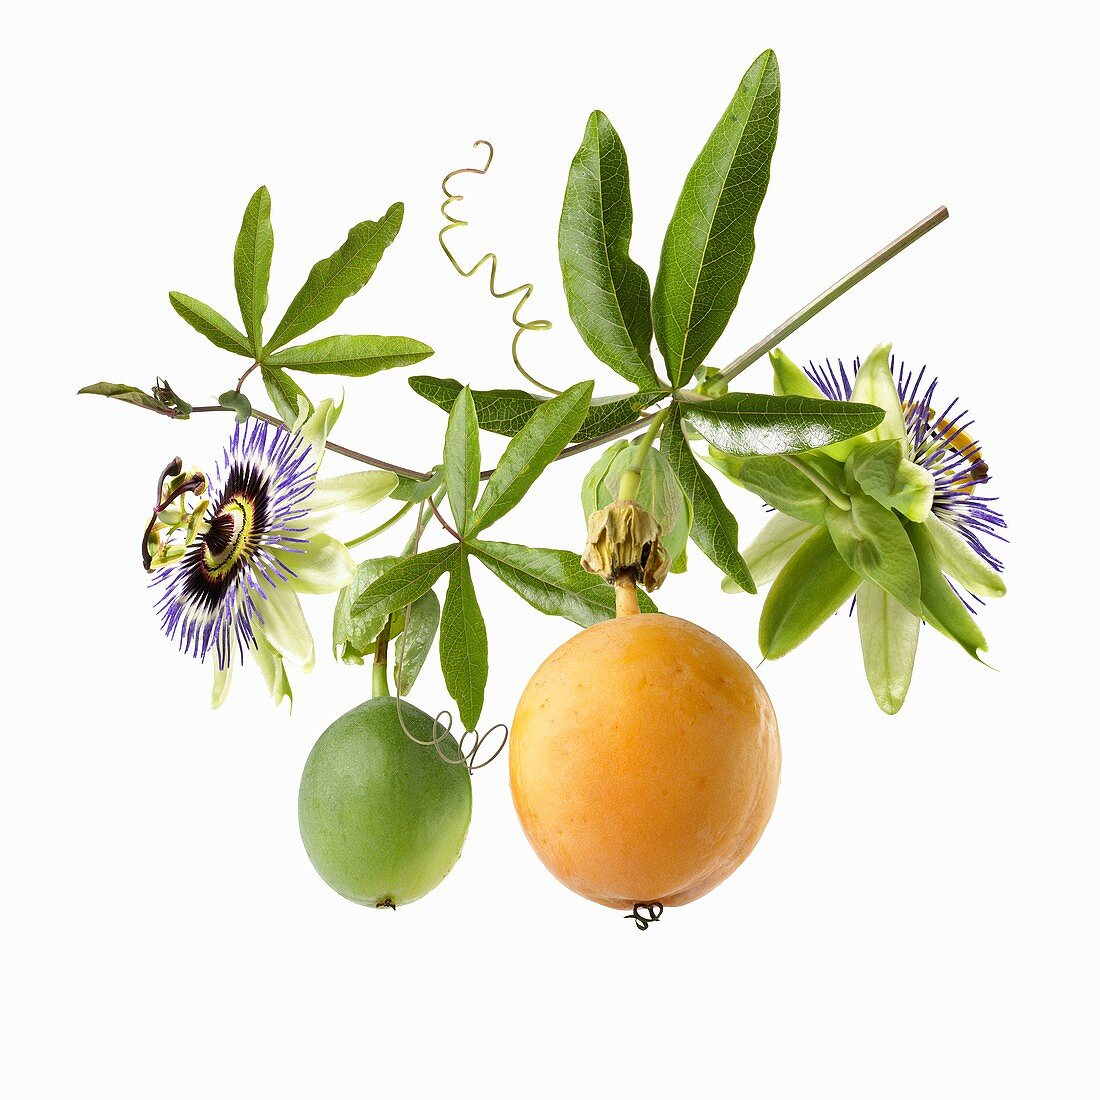 Two passion fruits and flowers on a stalk